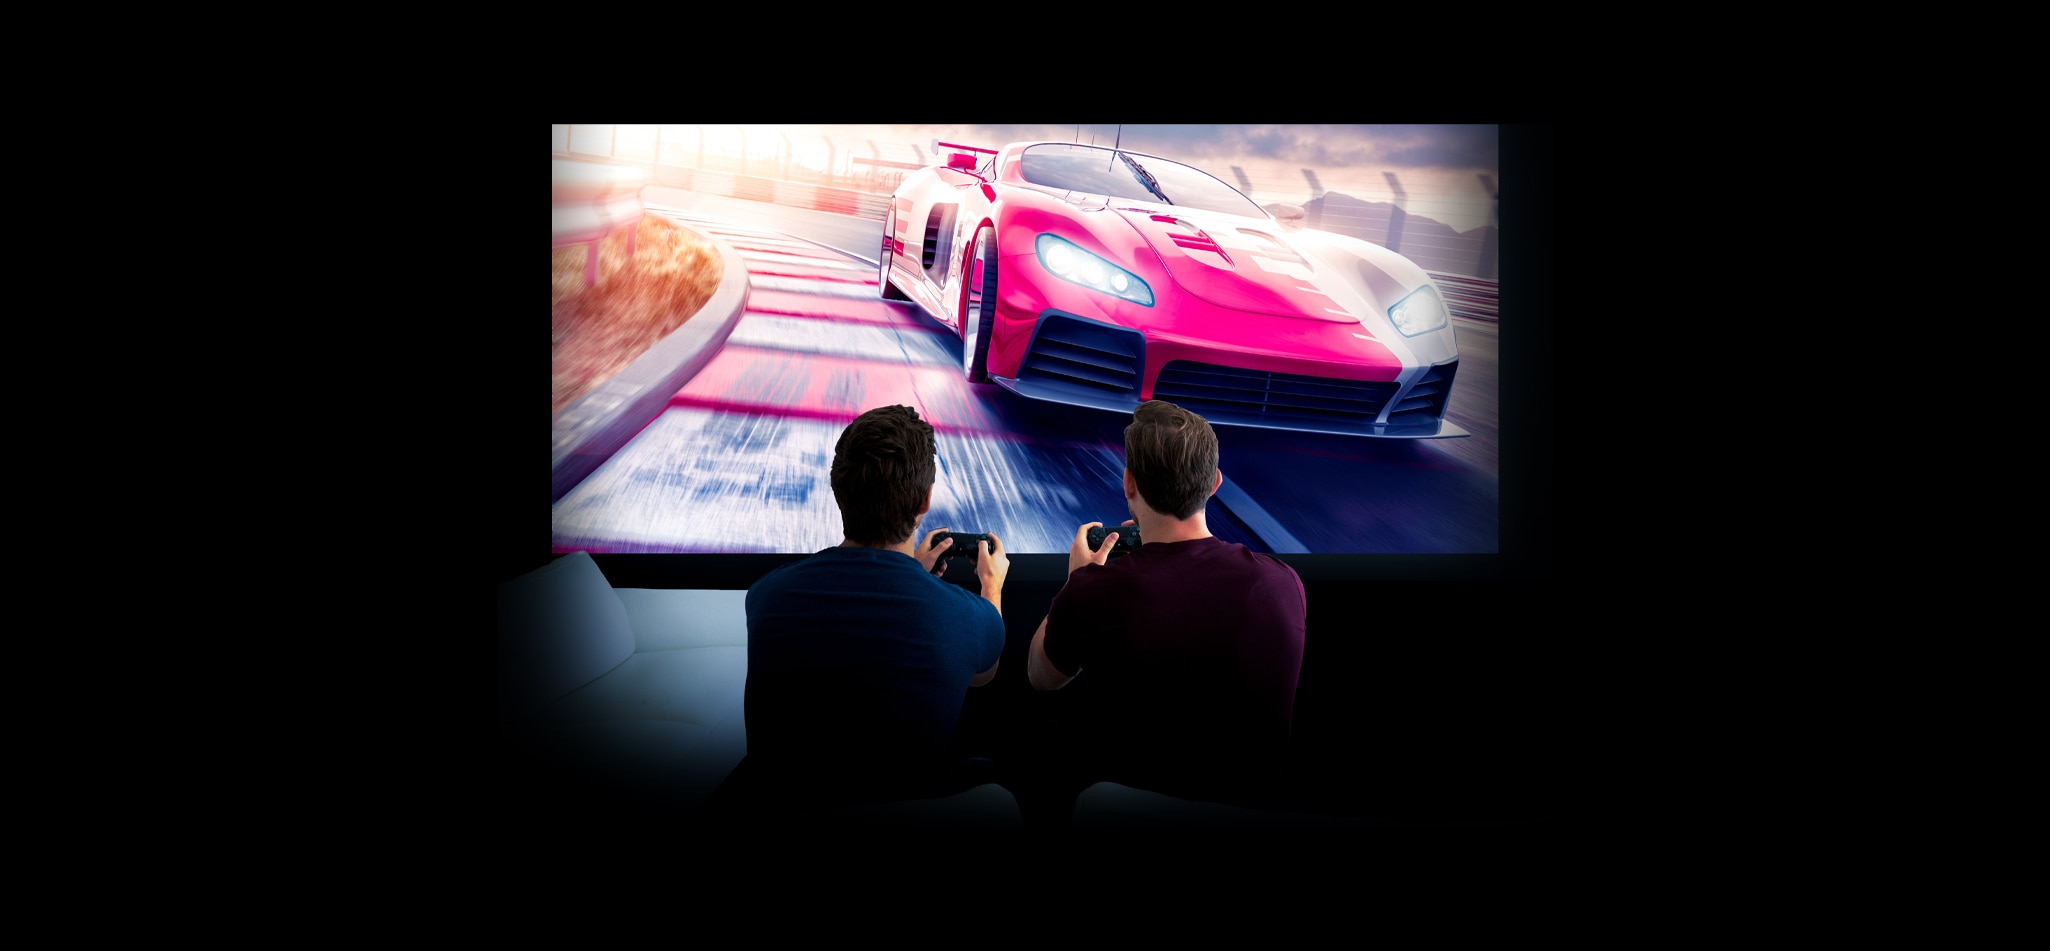 Two men are playing a video game in a home cinema. A racing car is visible on the display.